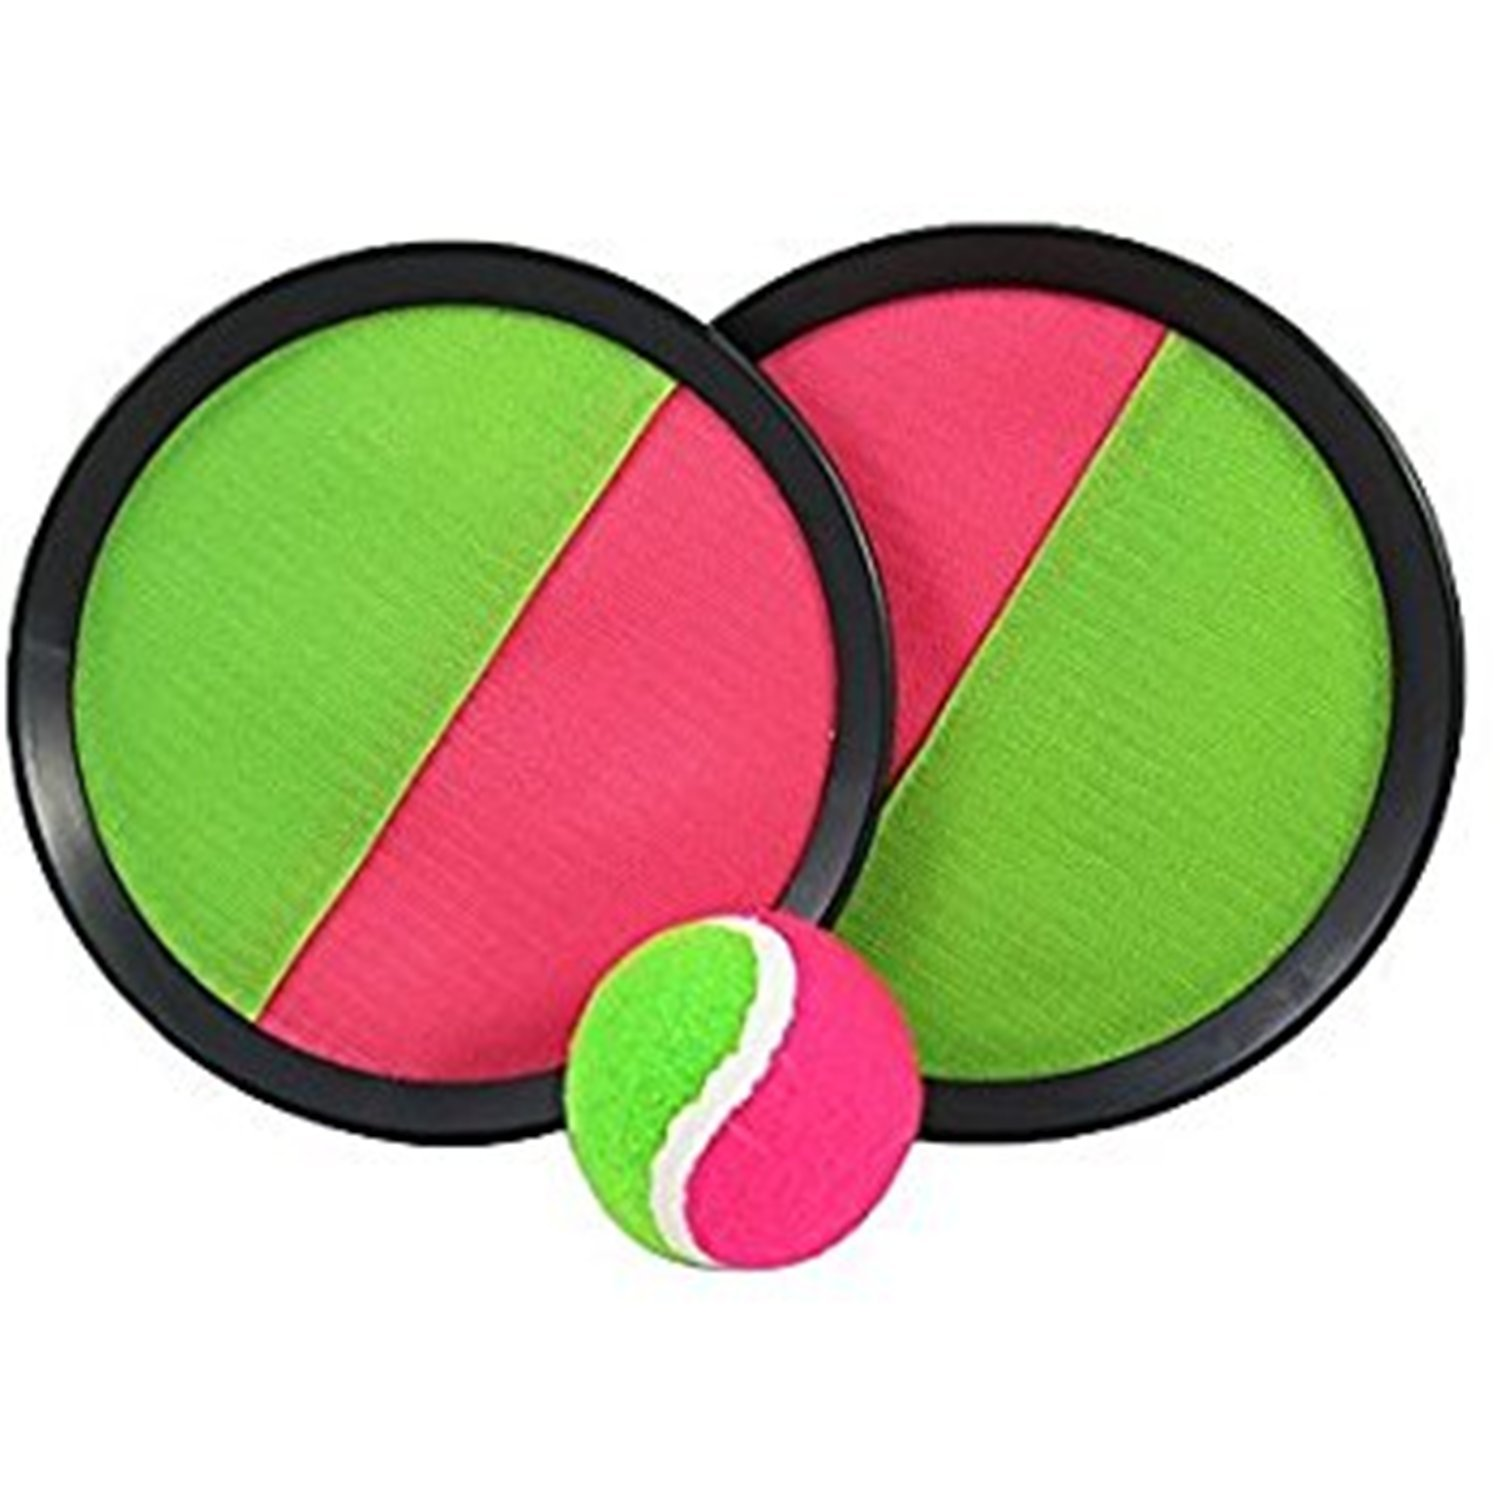 JEWELS FASHION Durable Toss & Catch Ball Game with Disc Paddles&Ball For Child or Adult- Perfect For Indoor& Outdoor, Traveling, Backyard, Garden, Beach, Park, School, Lakes